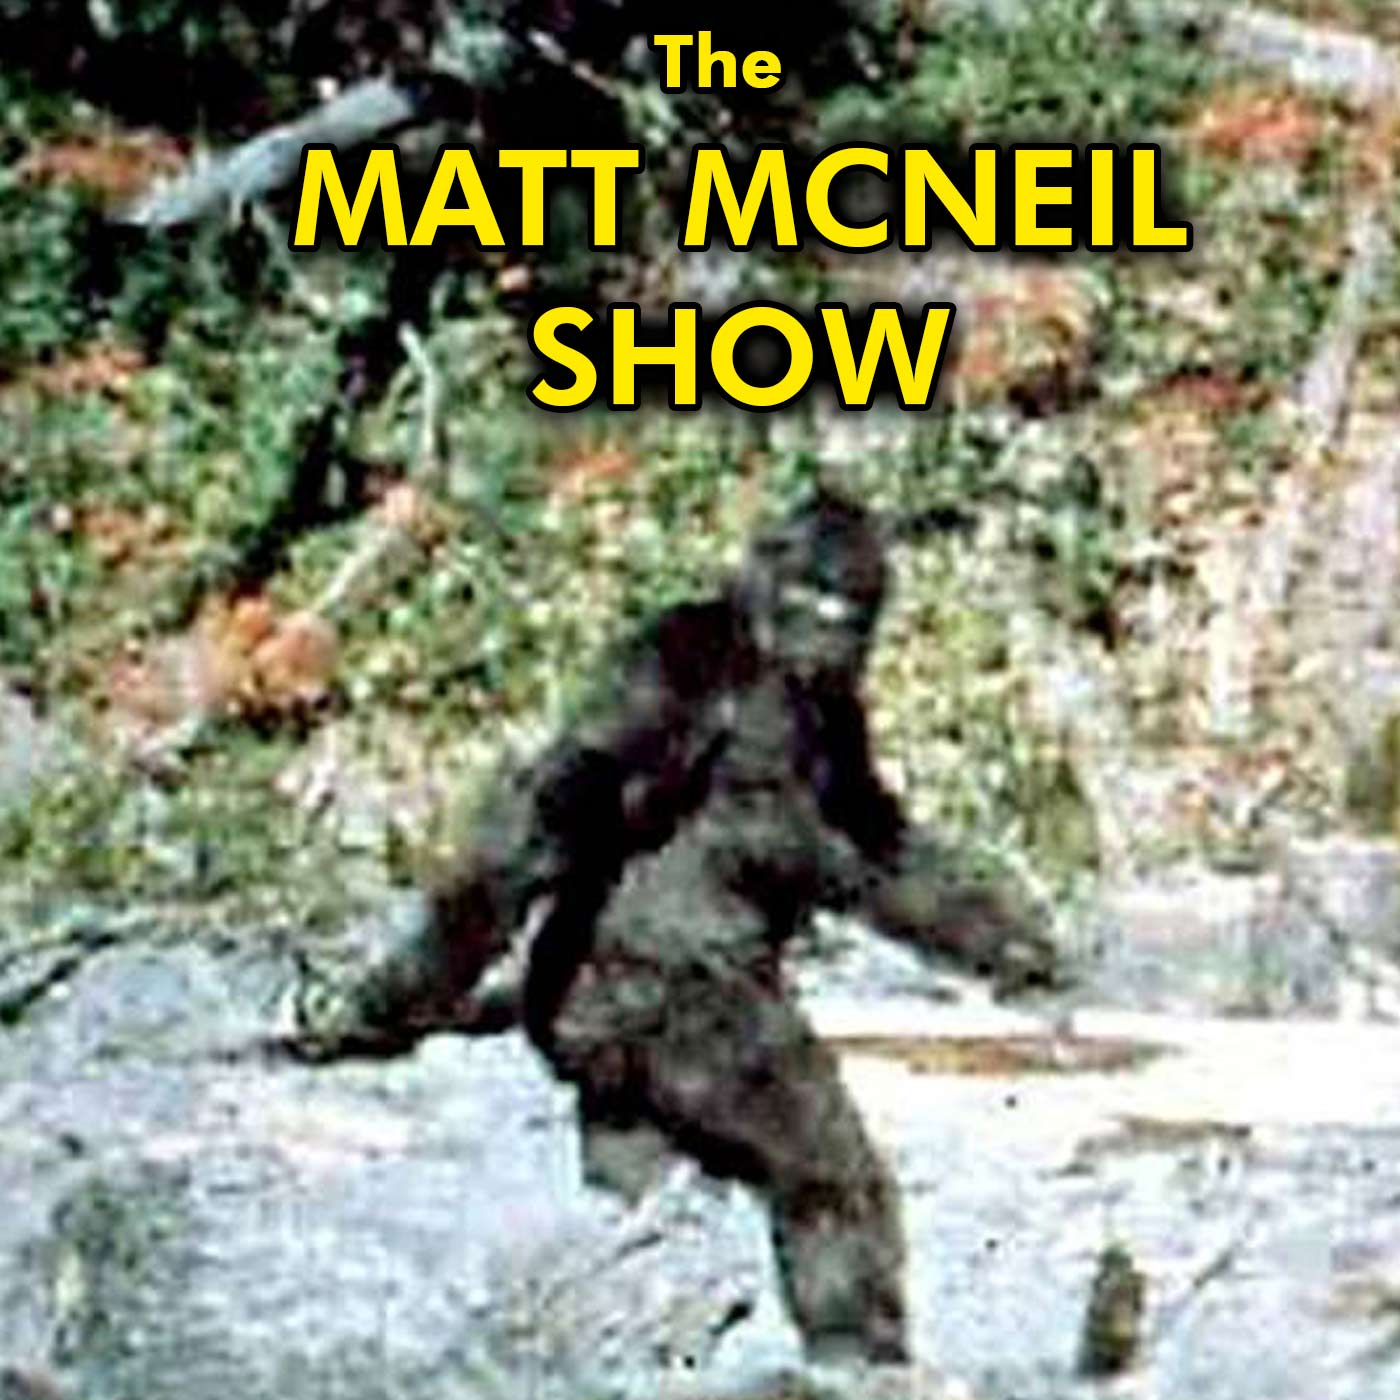 The Matt McNeil Show - AM950 The Progressive Voice of Minnesota